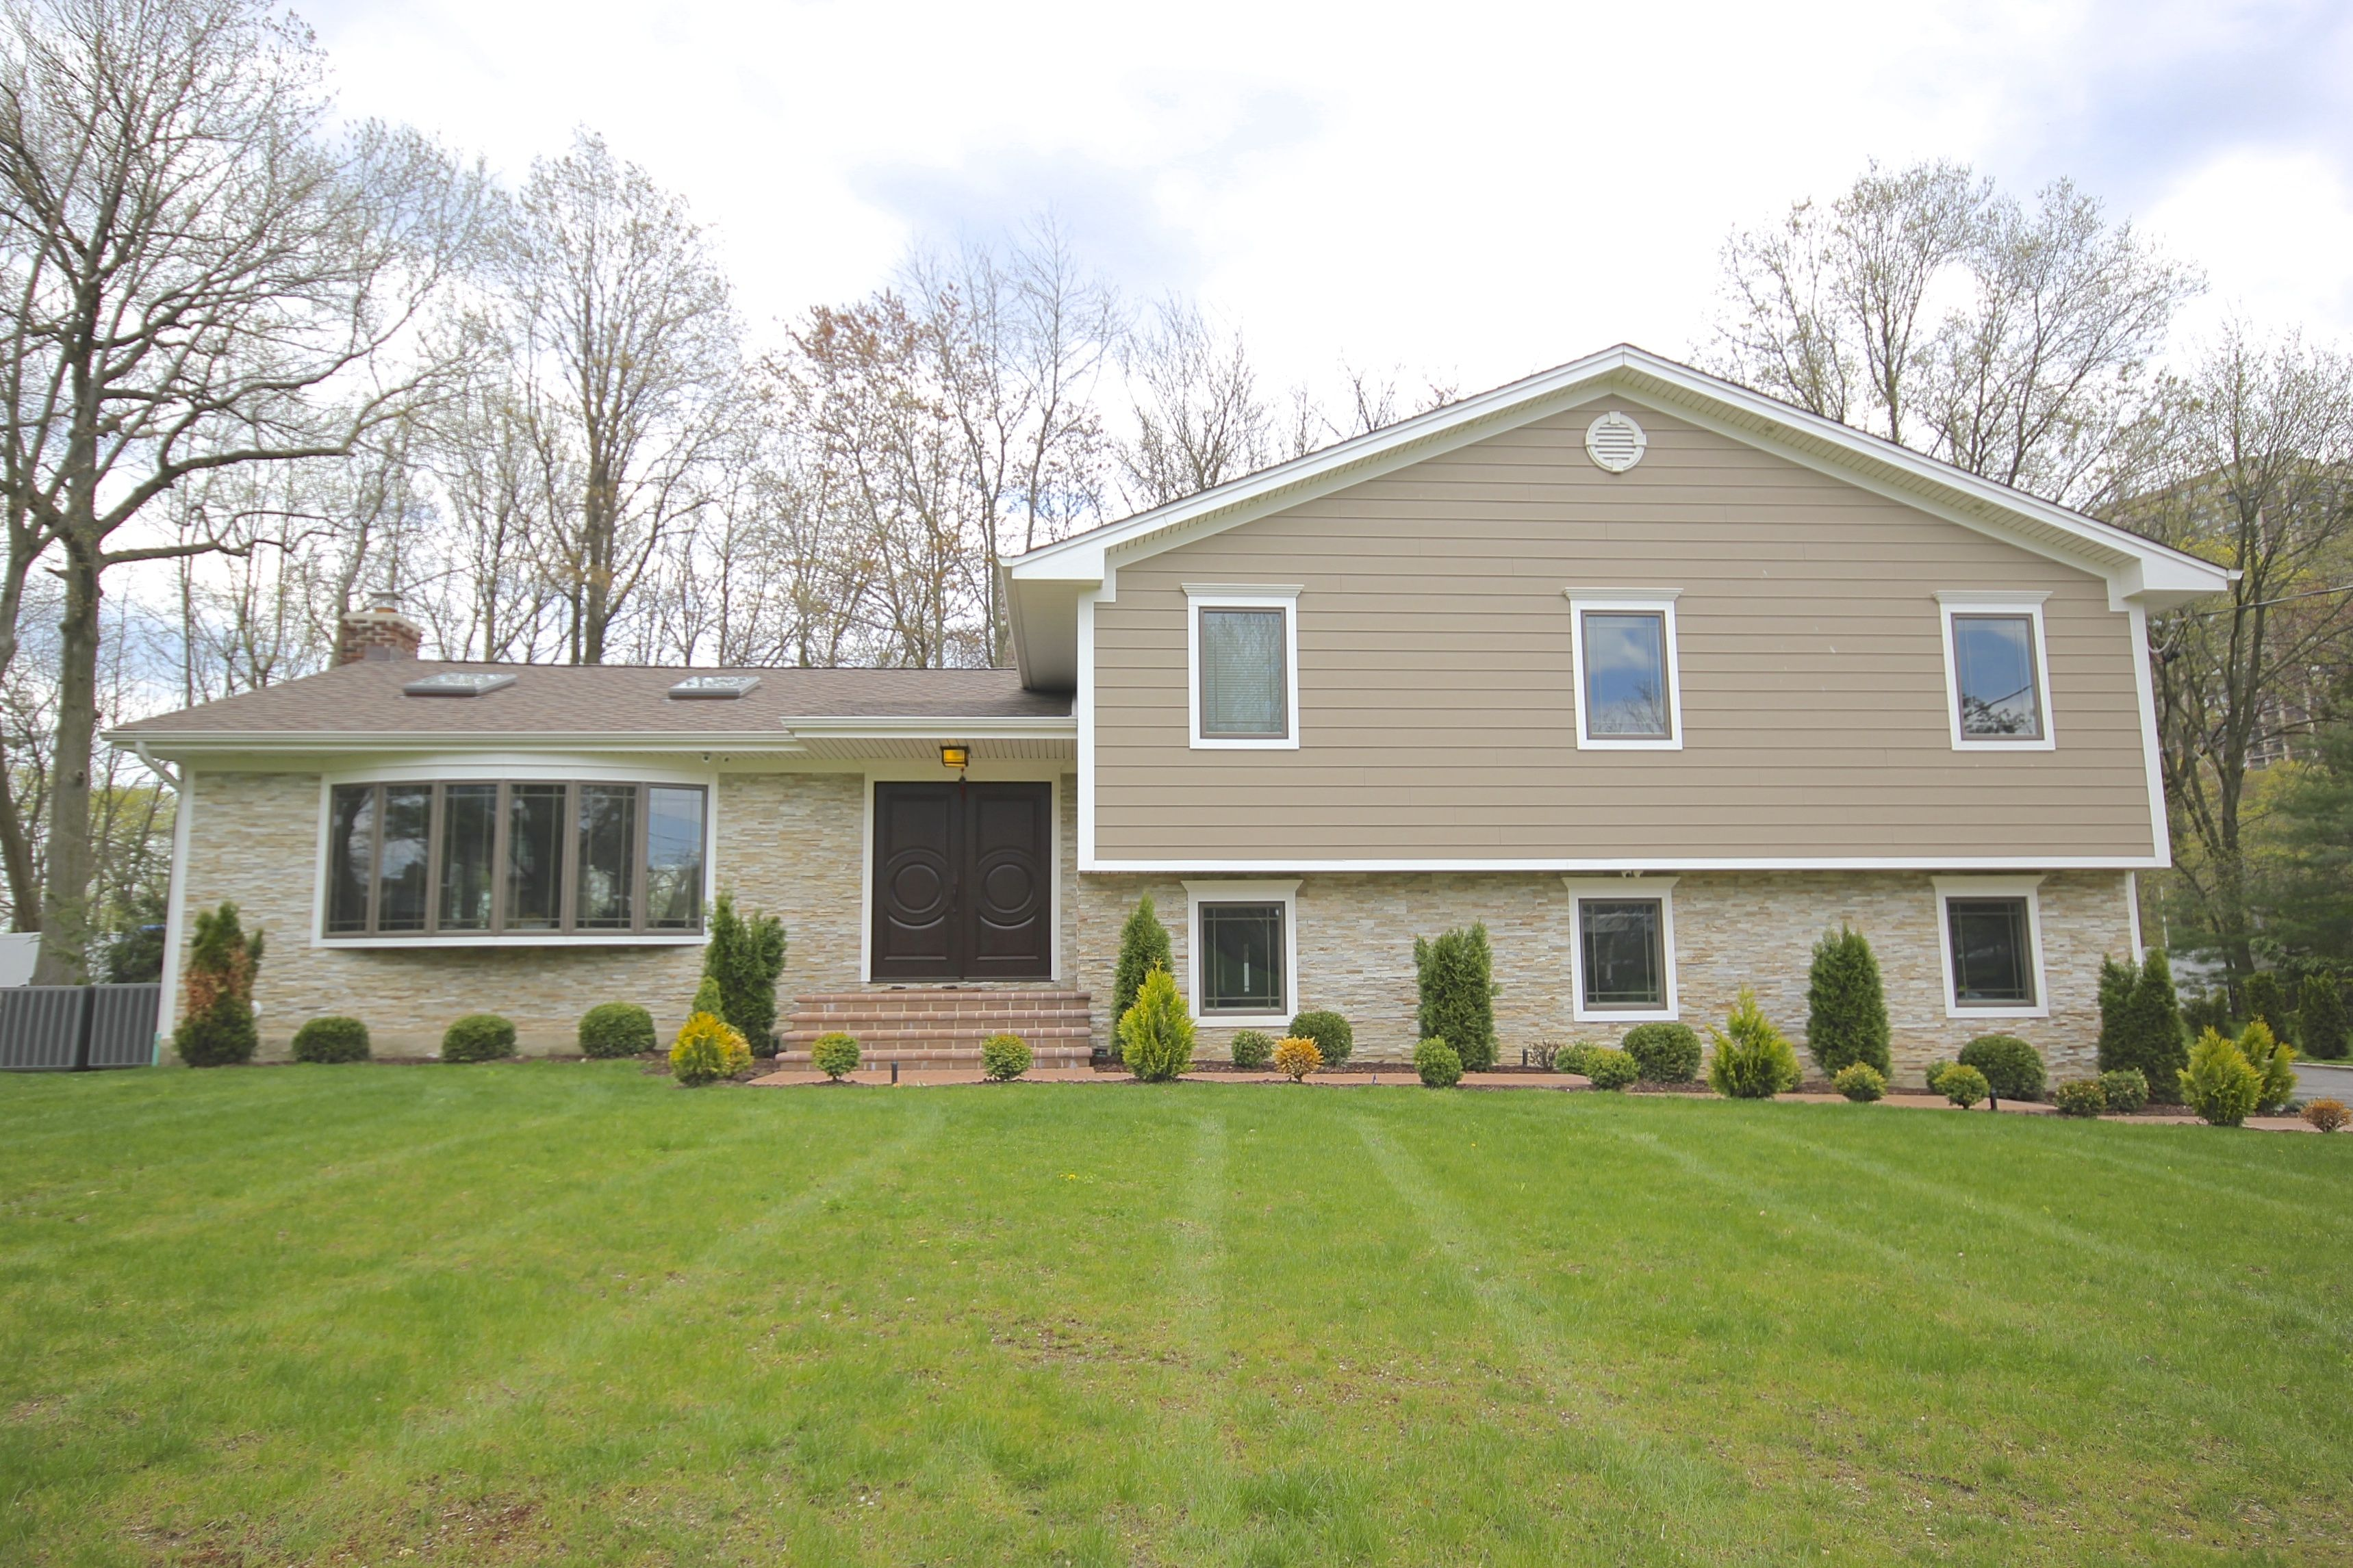 Pin By Premier Building On Lake Success Ny Complete Home Renovation Building Renovation James Hardie Siding Hardie Siding